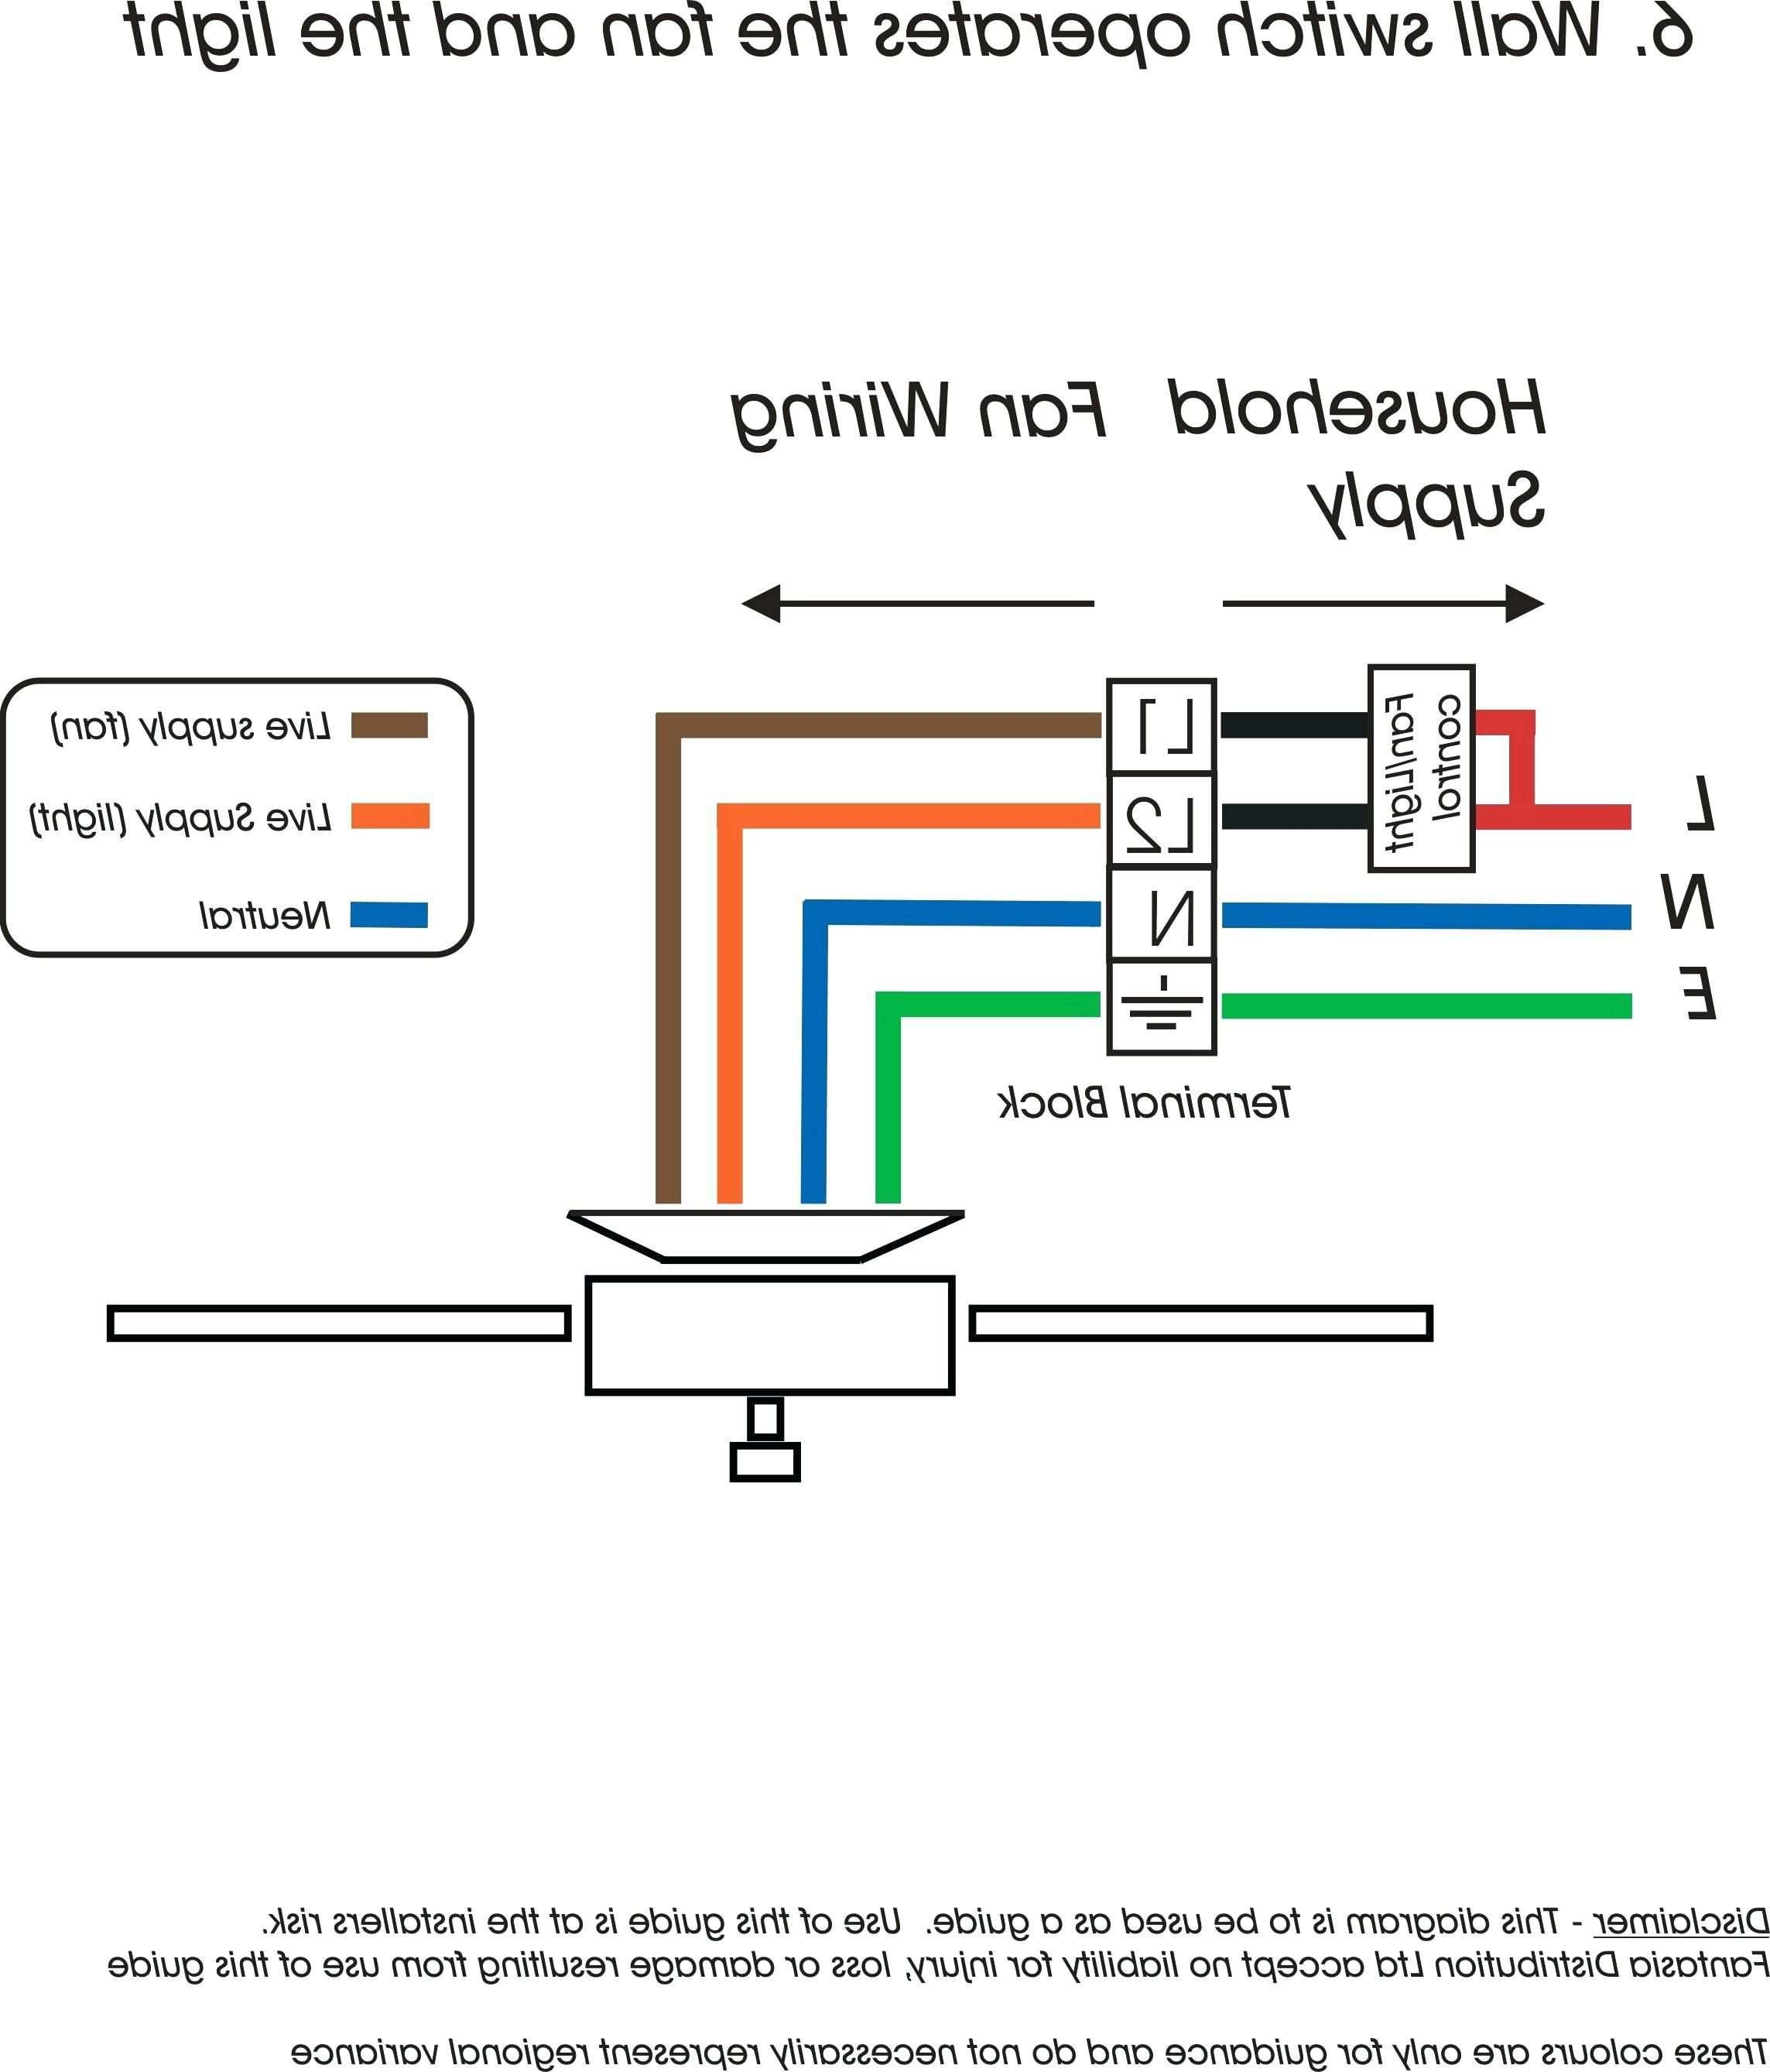 exhaust fan wiring diagram Collection-Panasonic Exhaust Fan Wiring Diagram New Panasonic Bathroom Fan And Light Inspirational Wiring Diagram For 4-s